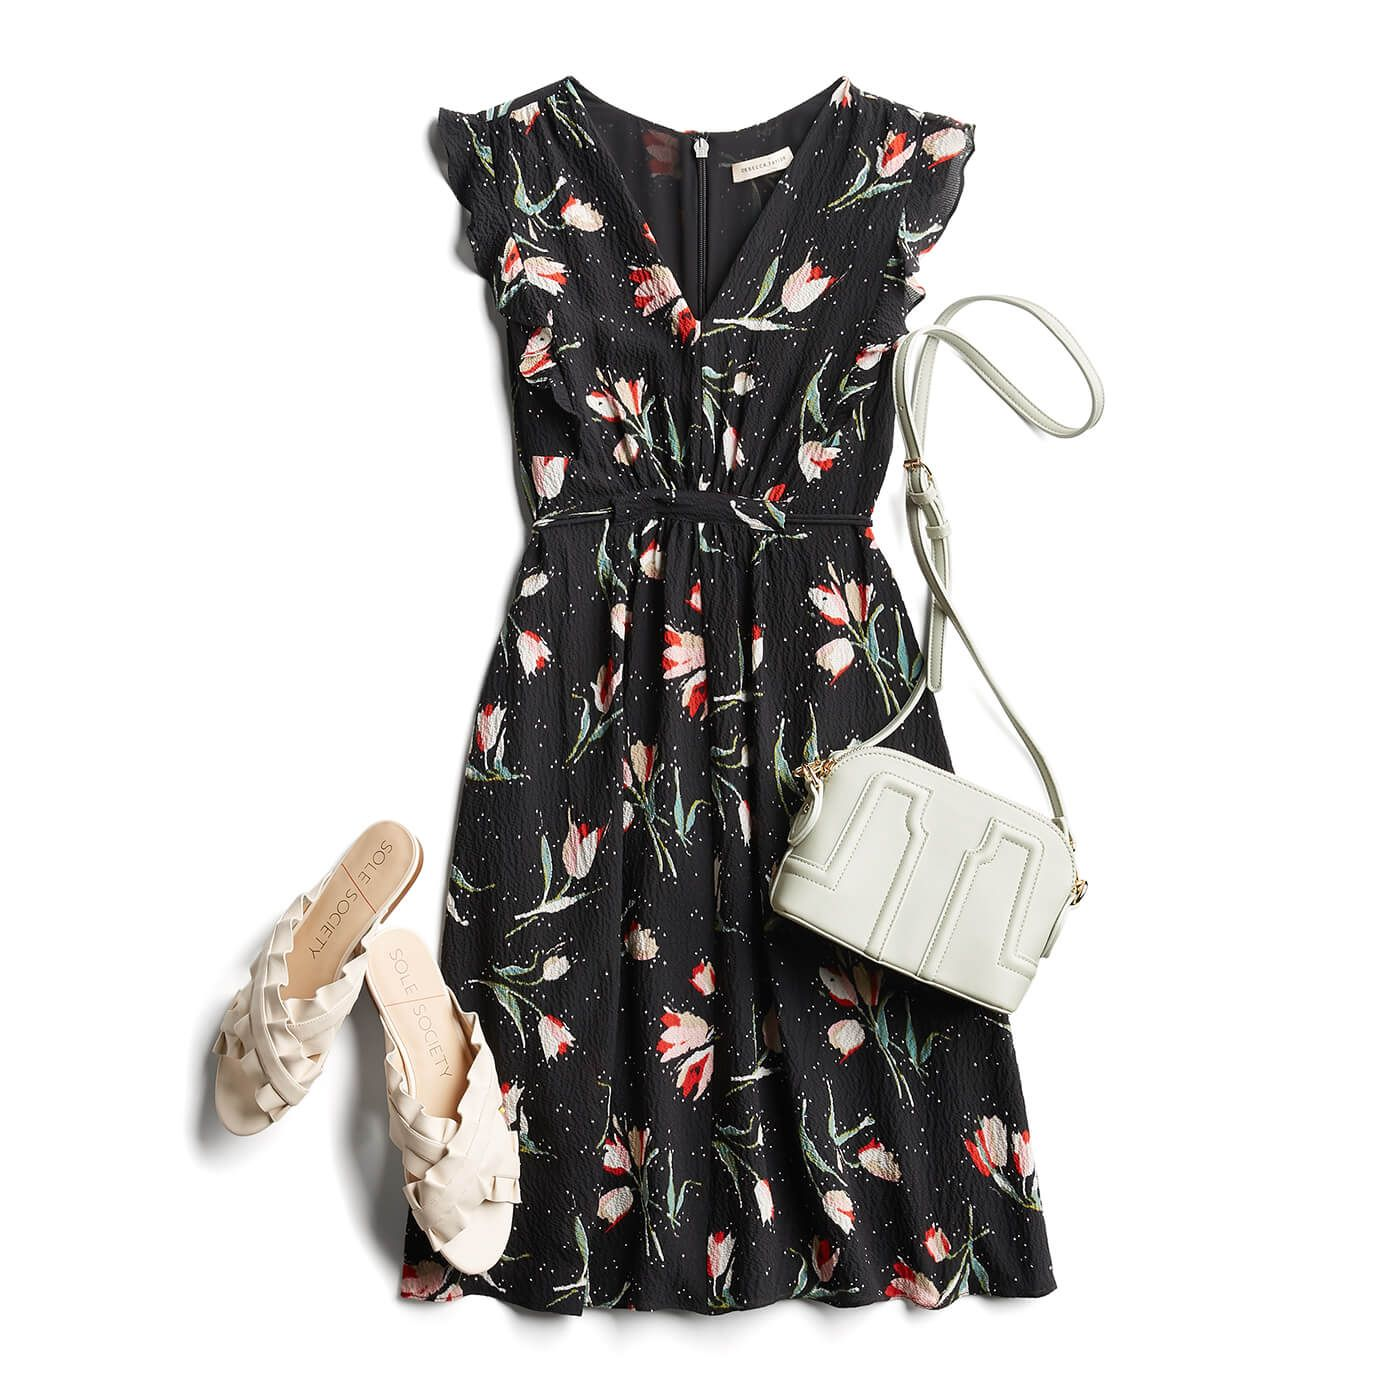 3019210ede Spring Fashion- super cute dress  love the pattern and the cut with the flat